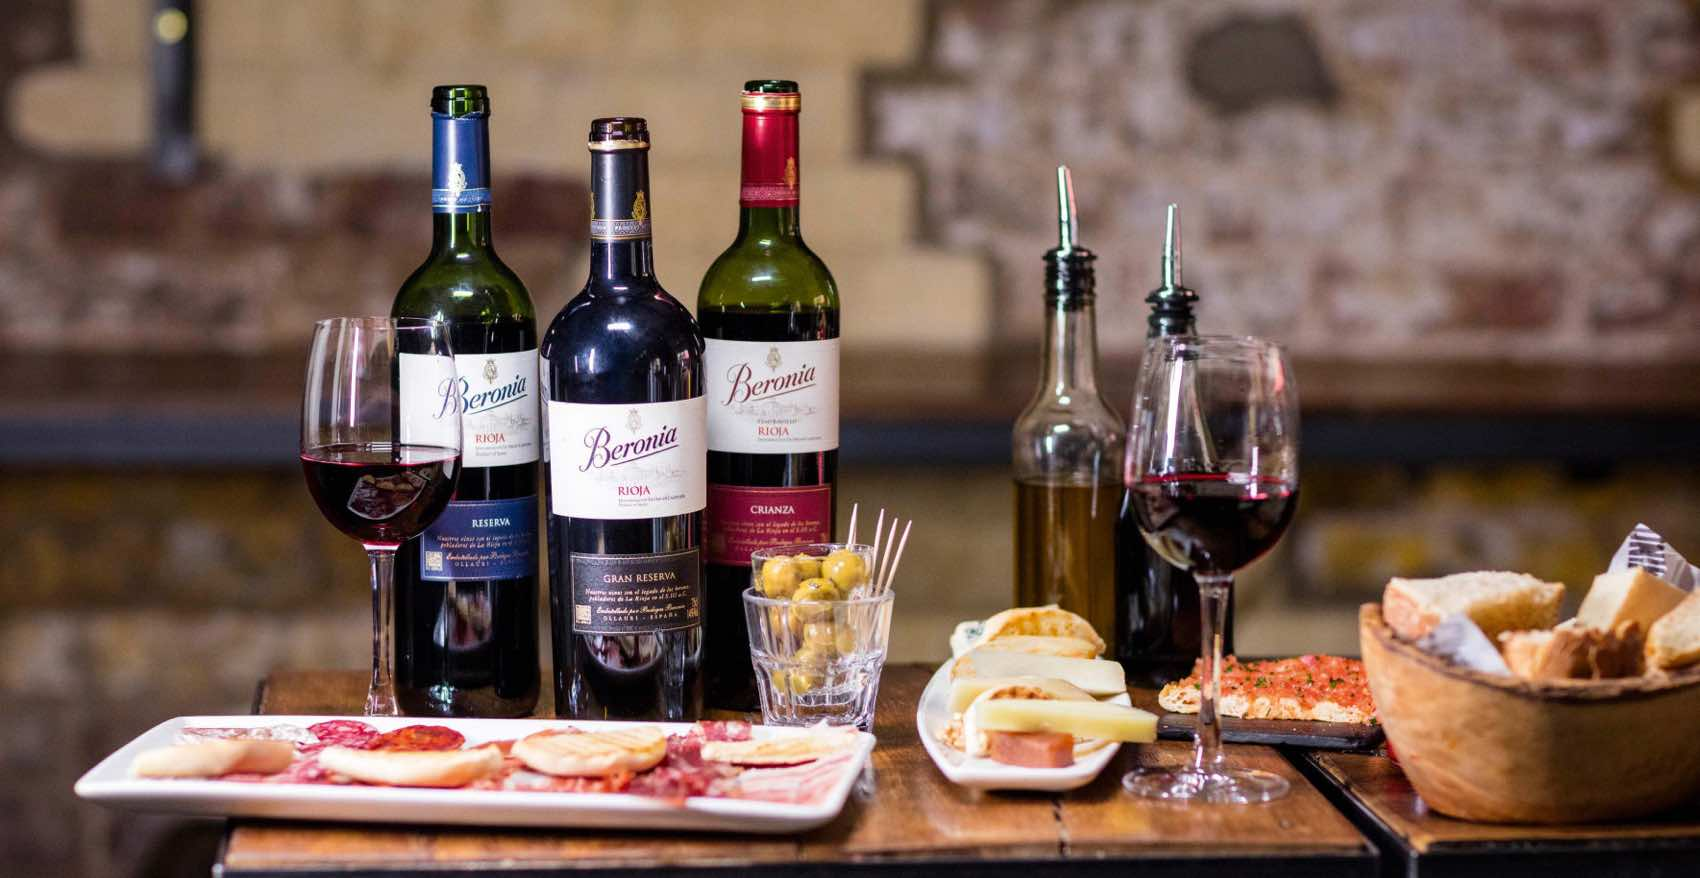 Wine from Rioja, the most important wine-region in Spain